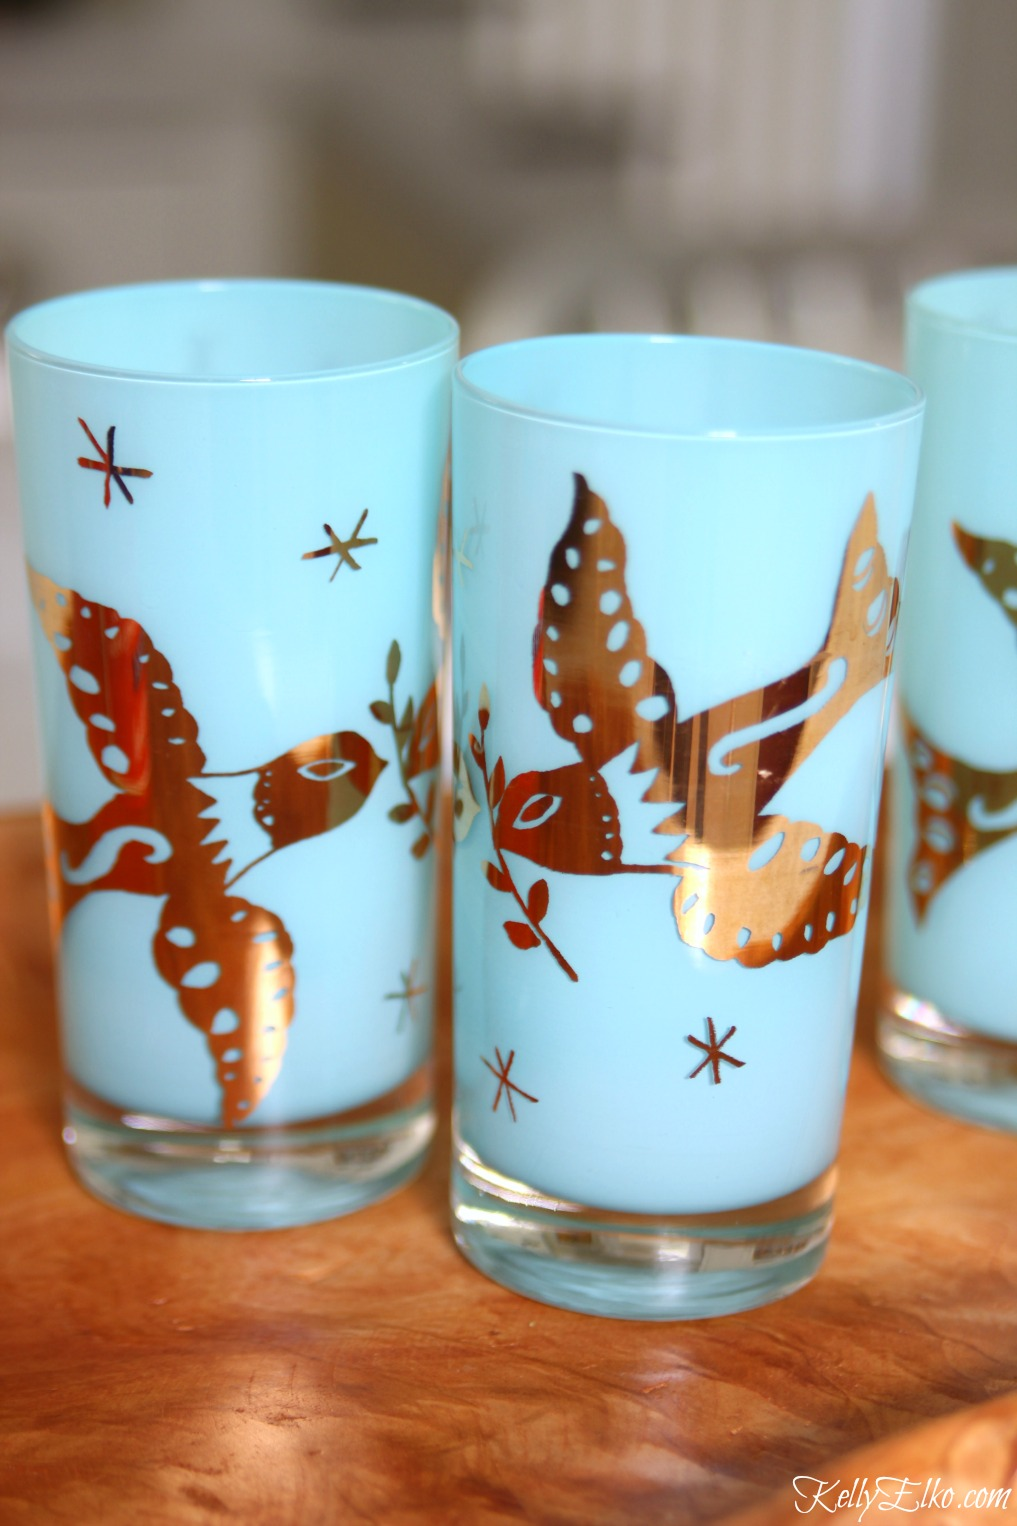 Mid century drinking glasses - love the vibrant blue with gold doves kellyelko.com